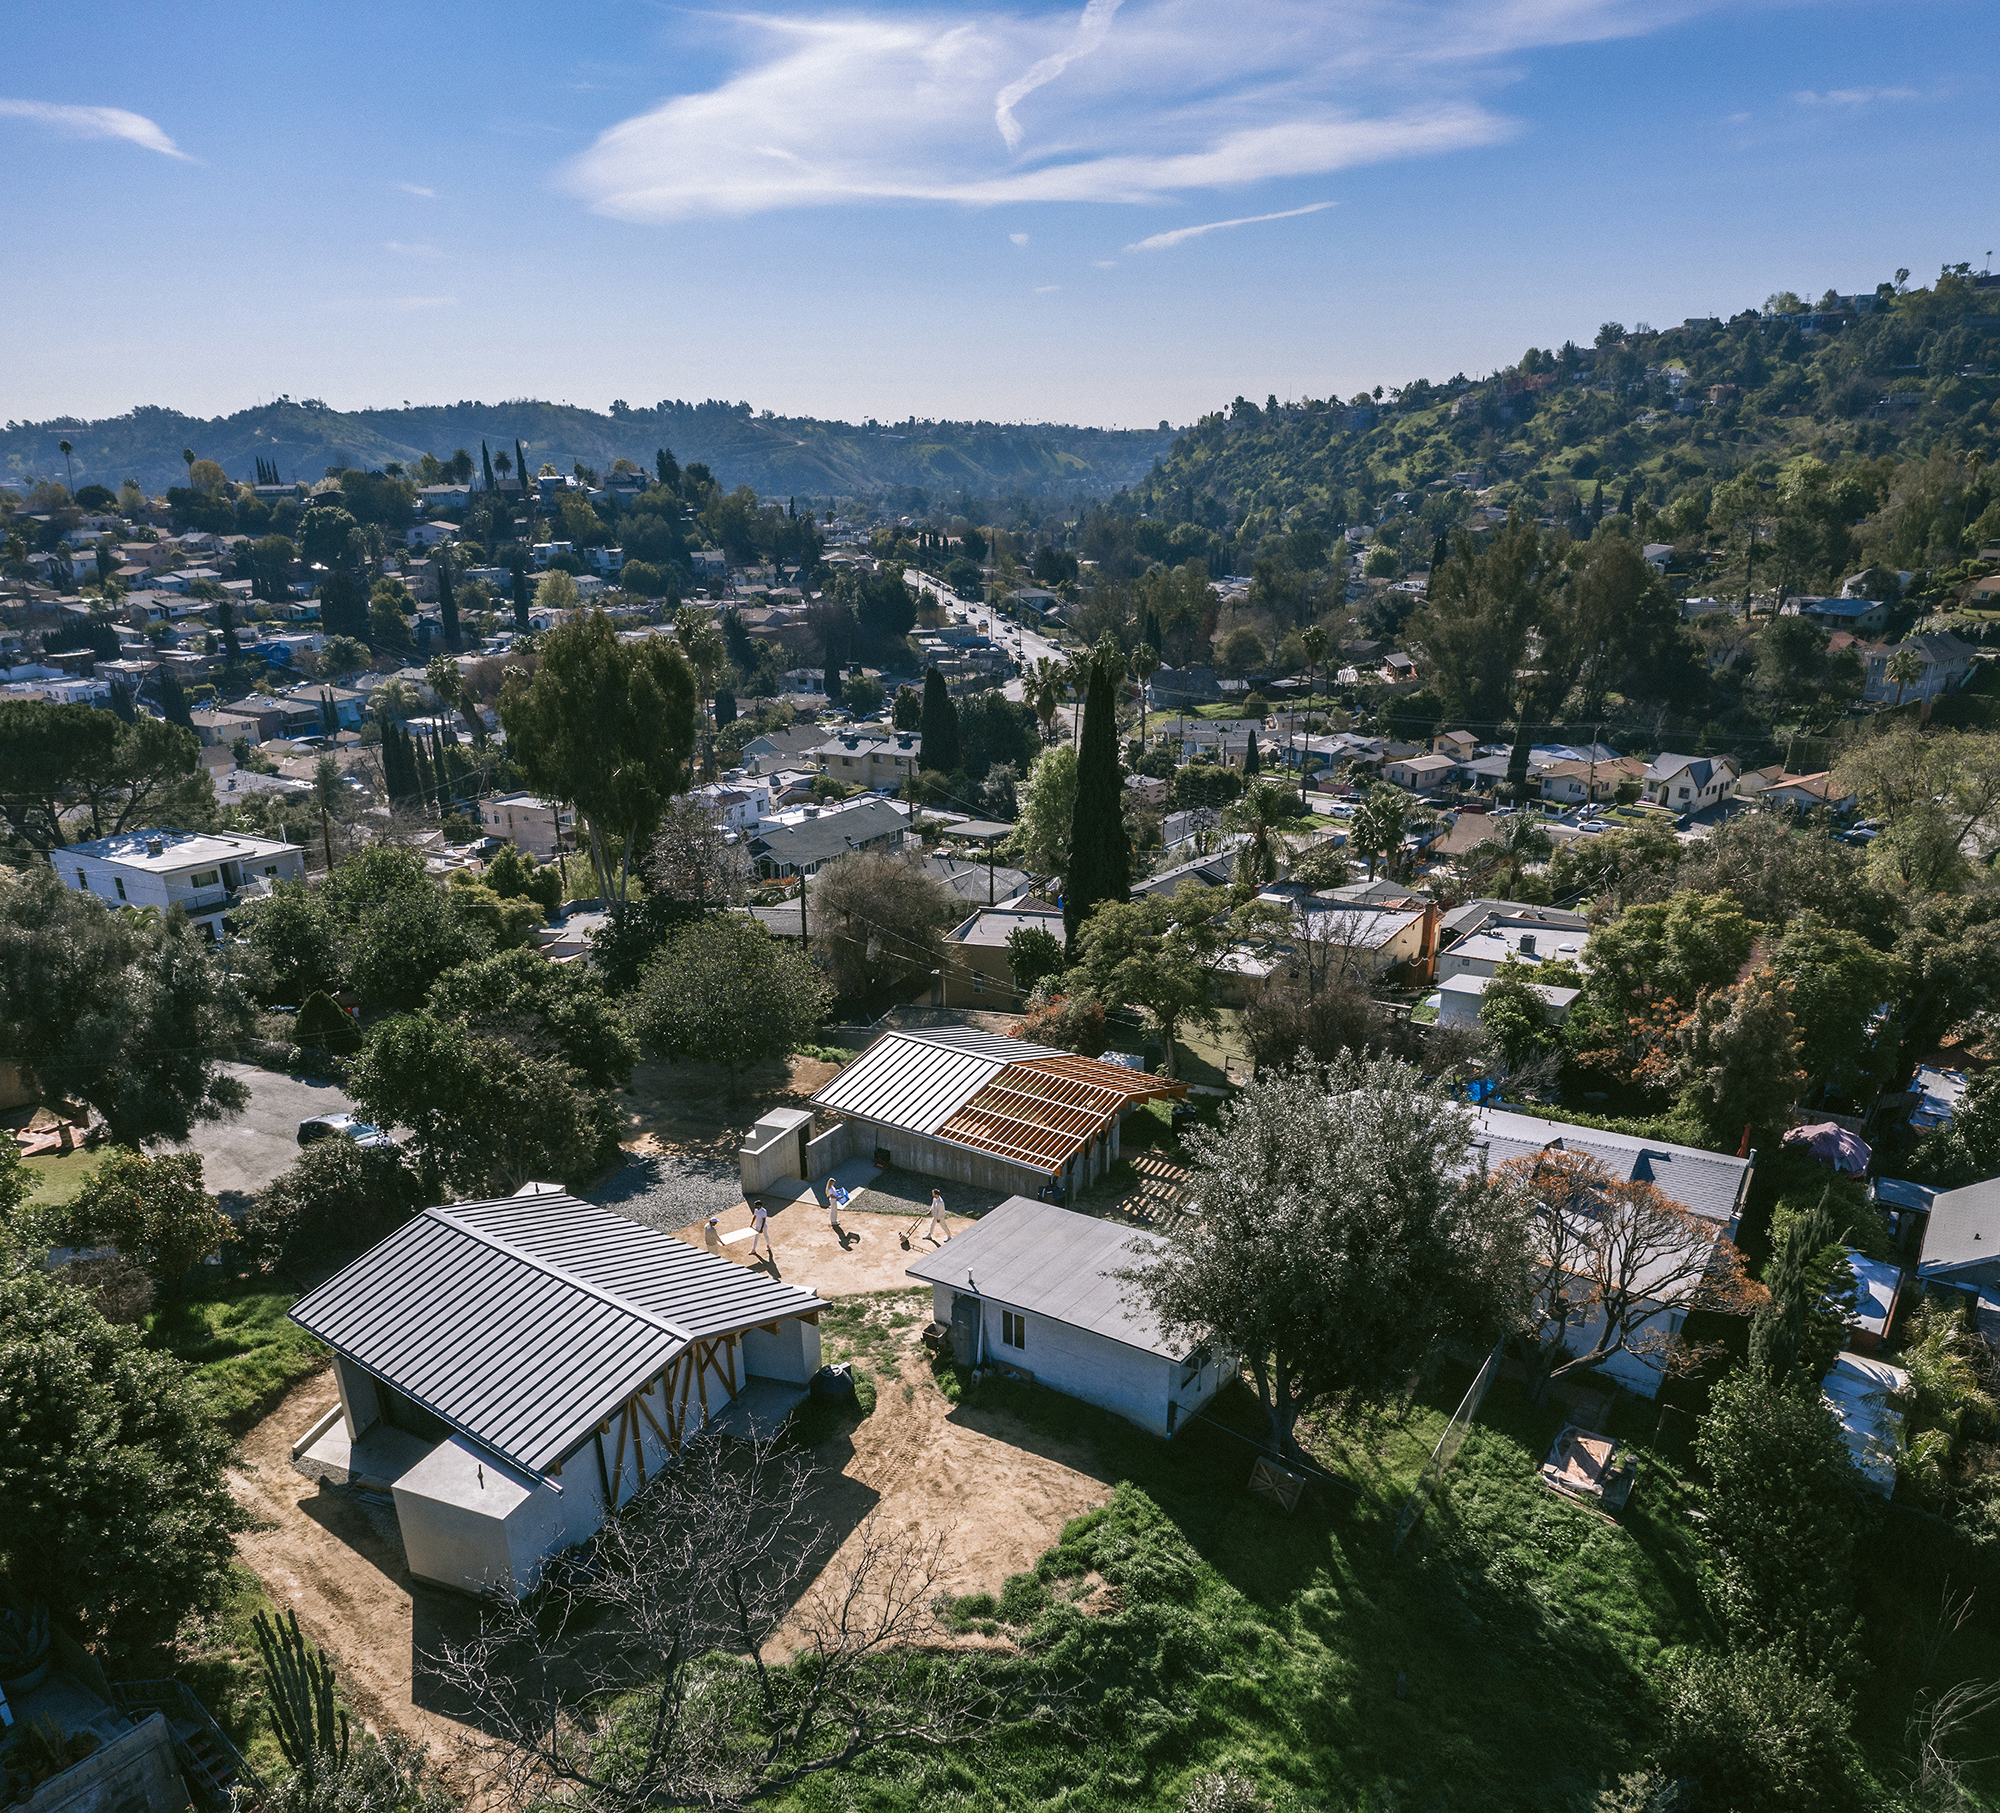 aerial view of a residential compound in LA